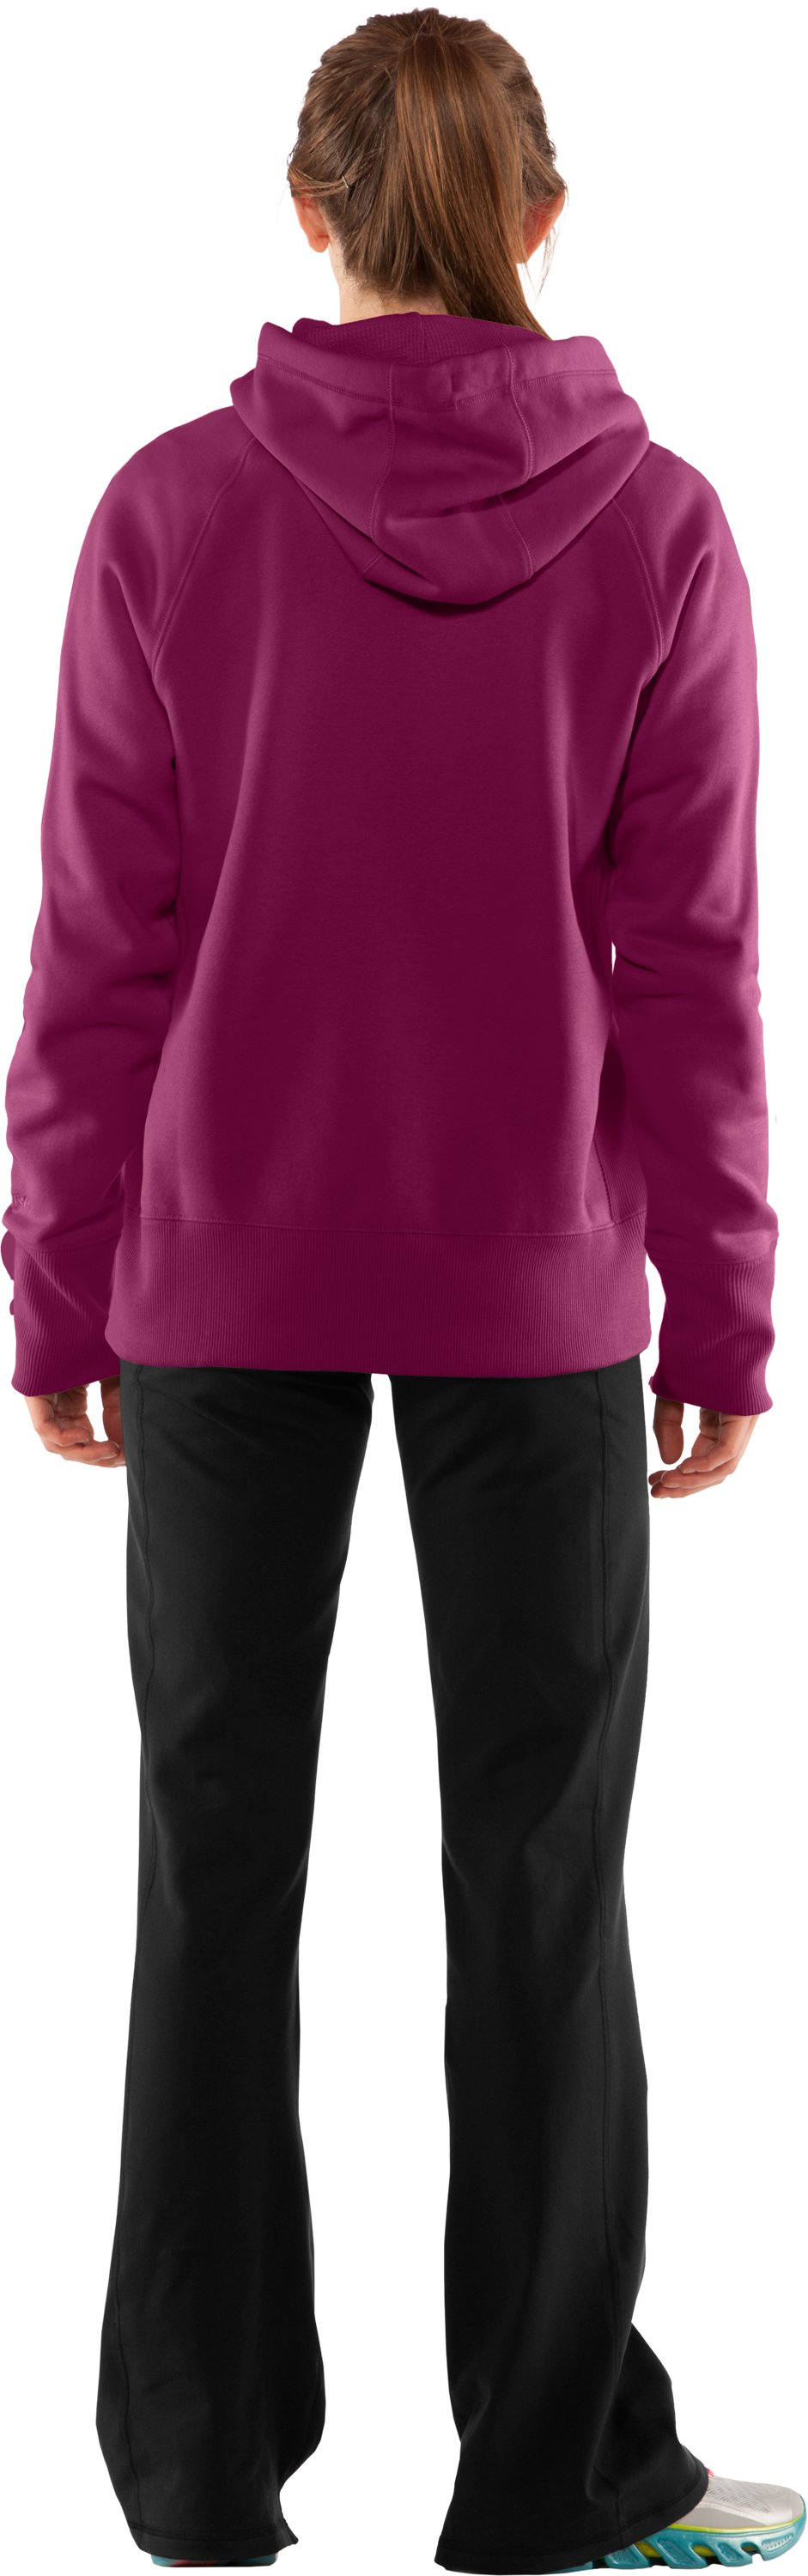 Women's Charged Cotton® Storm Hoodie, Rosewood, Back